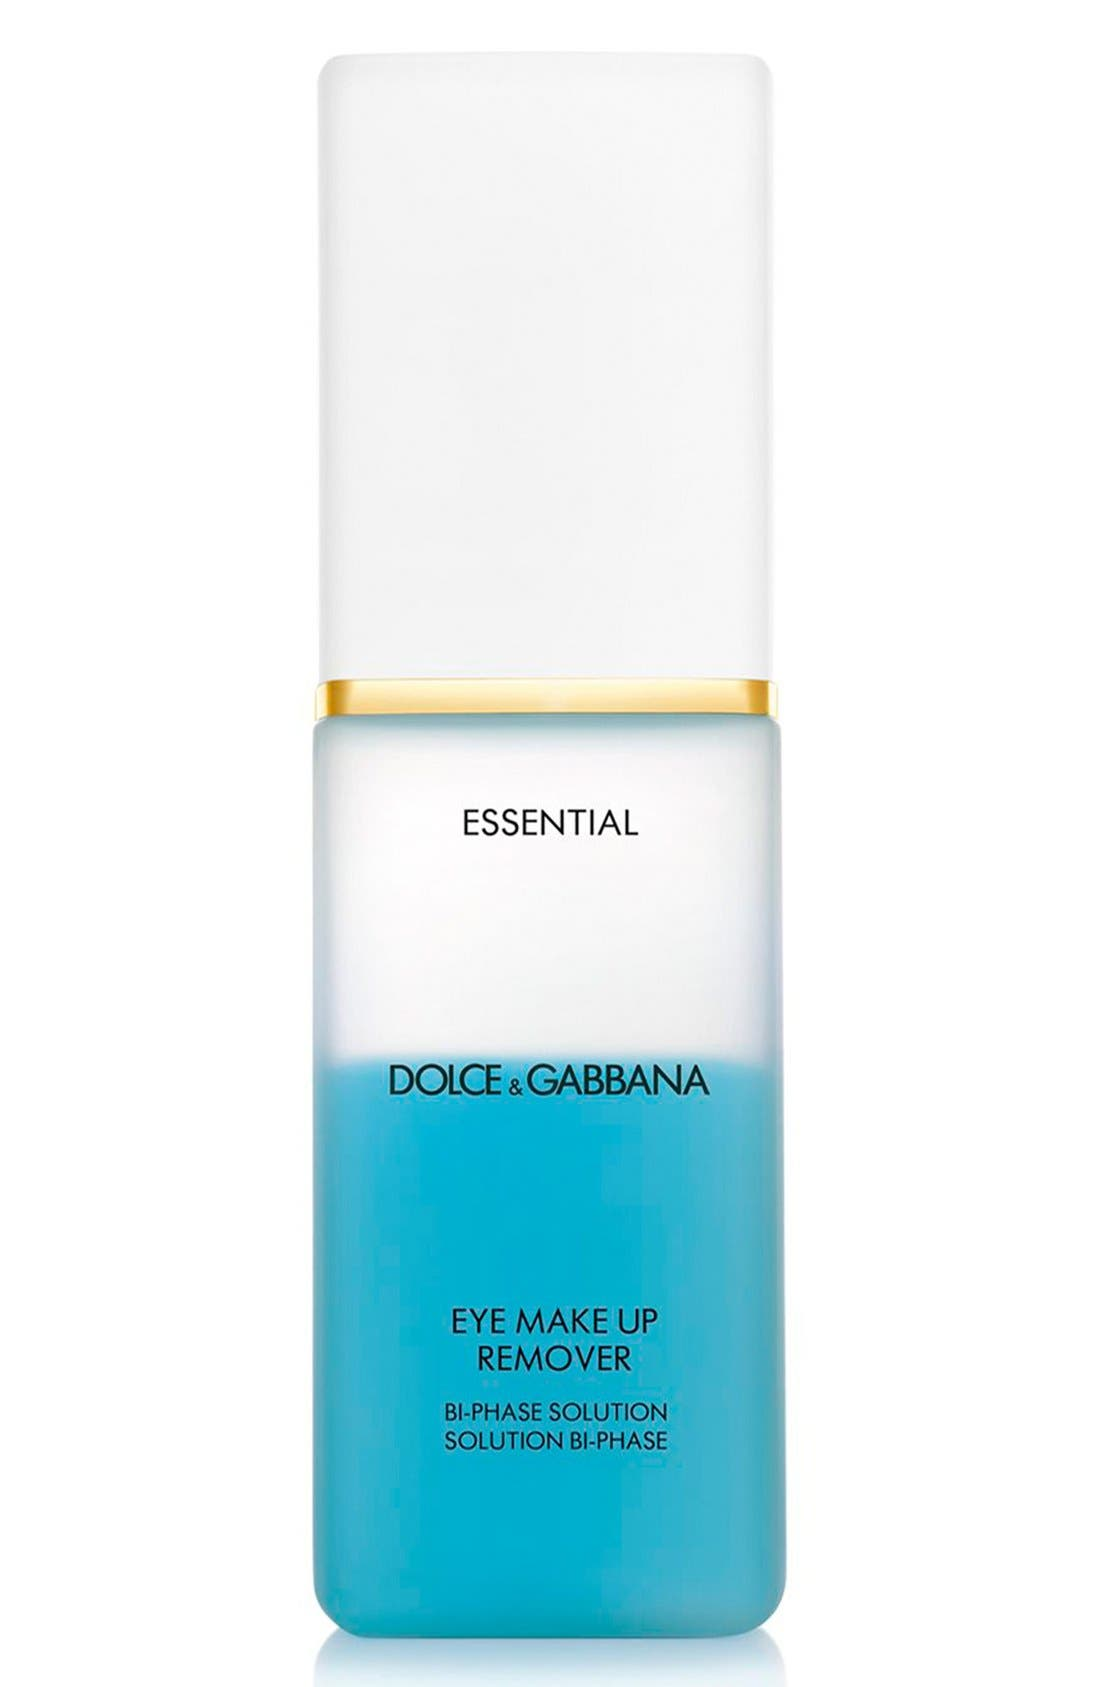 Dolce&Gabbana Beauty 'Essential' Eye Makeup Remover